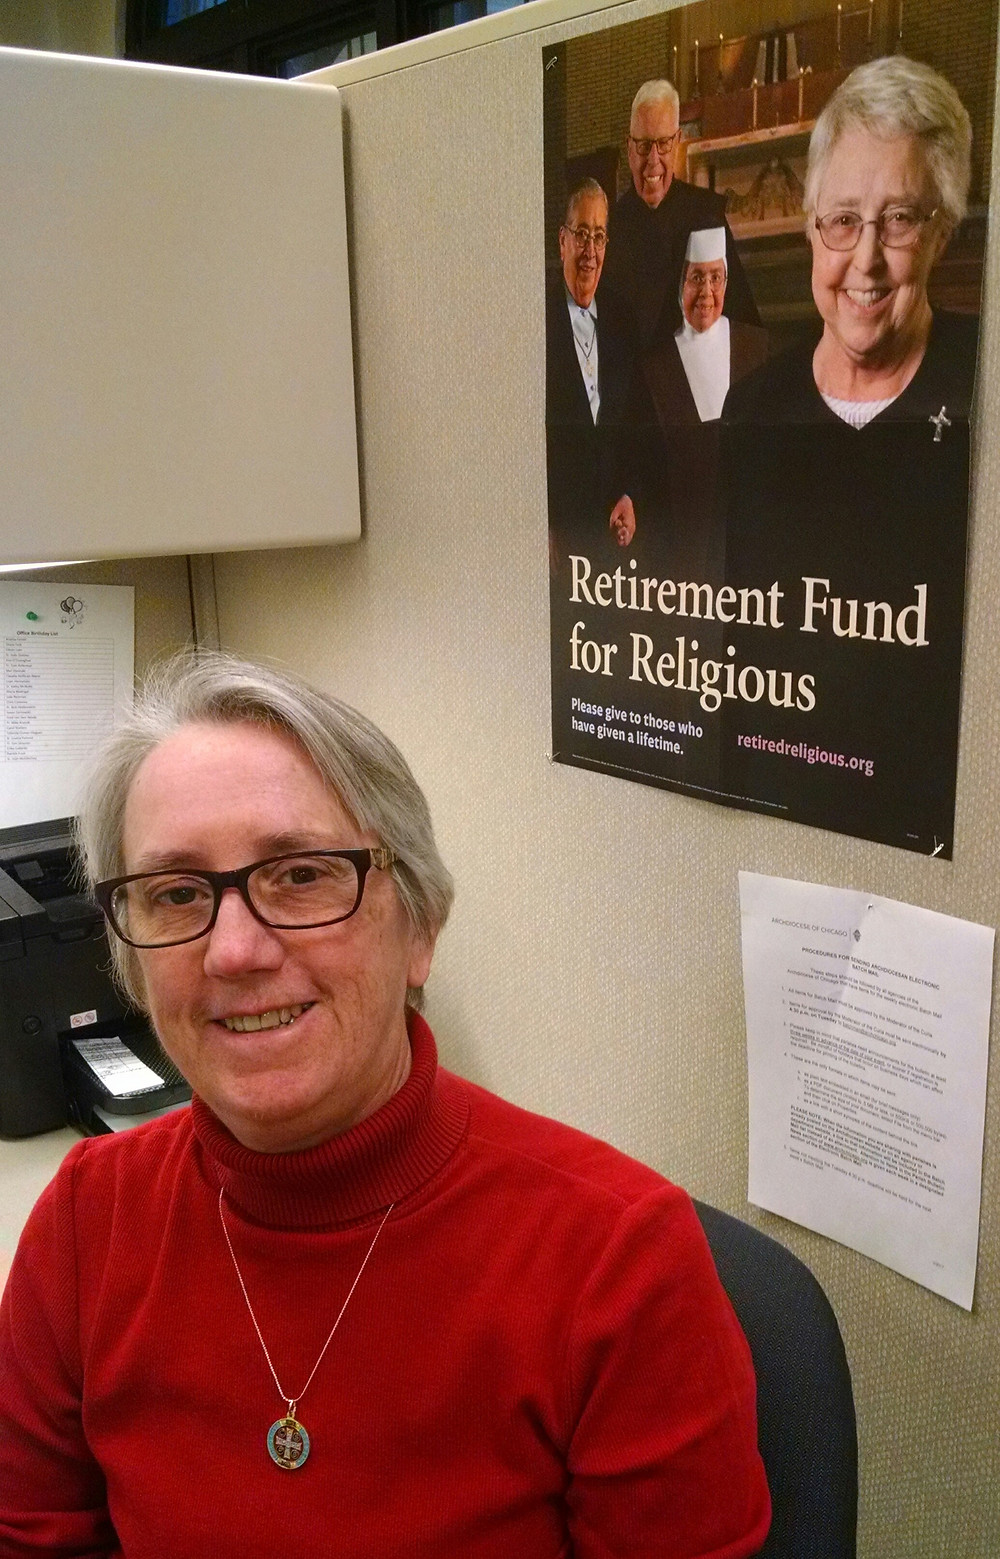 Sister Judith Zonsius, OSB Coordinator for the Retirement Fund for Religious